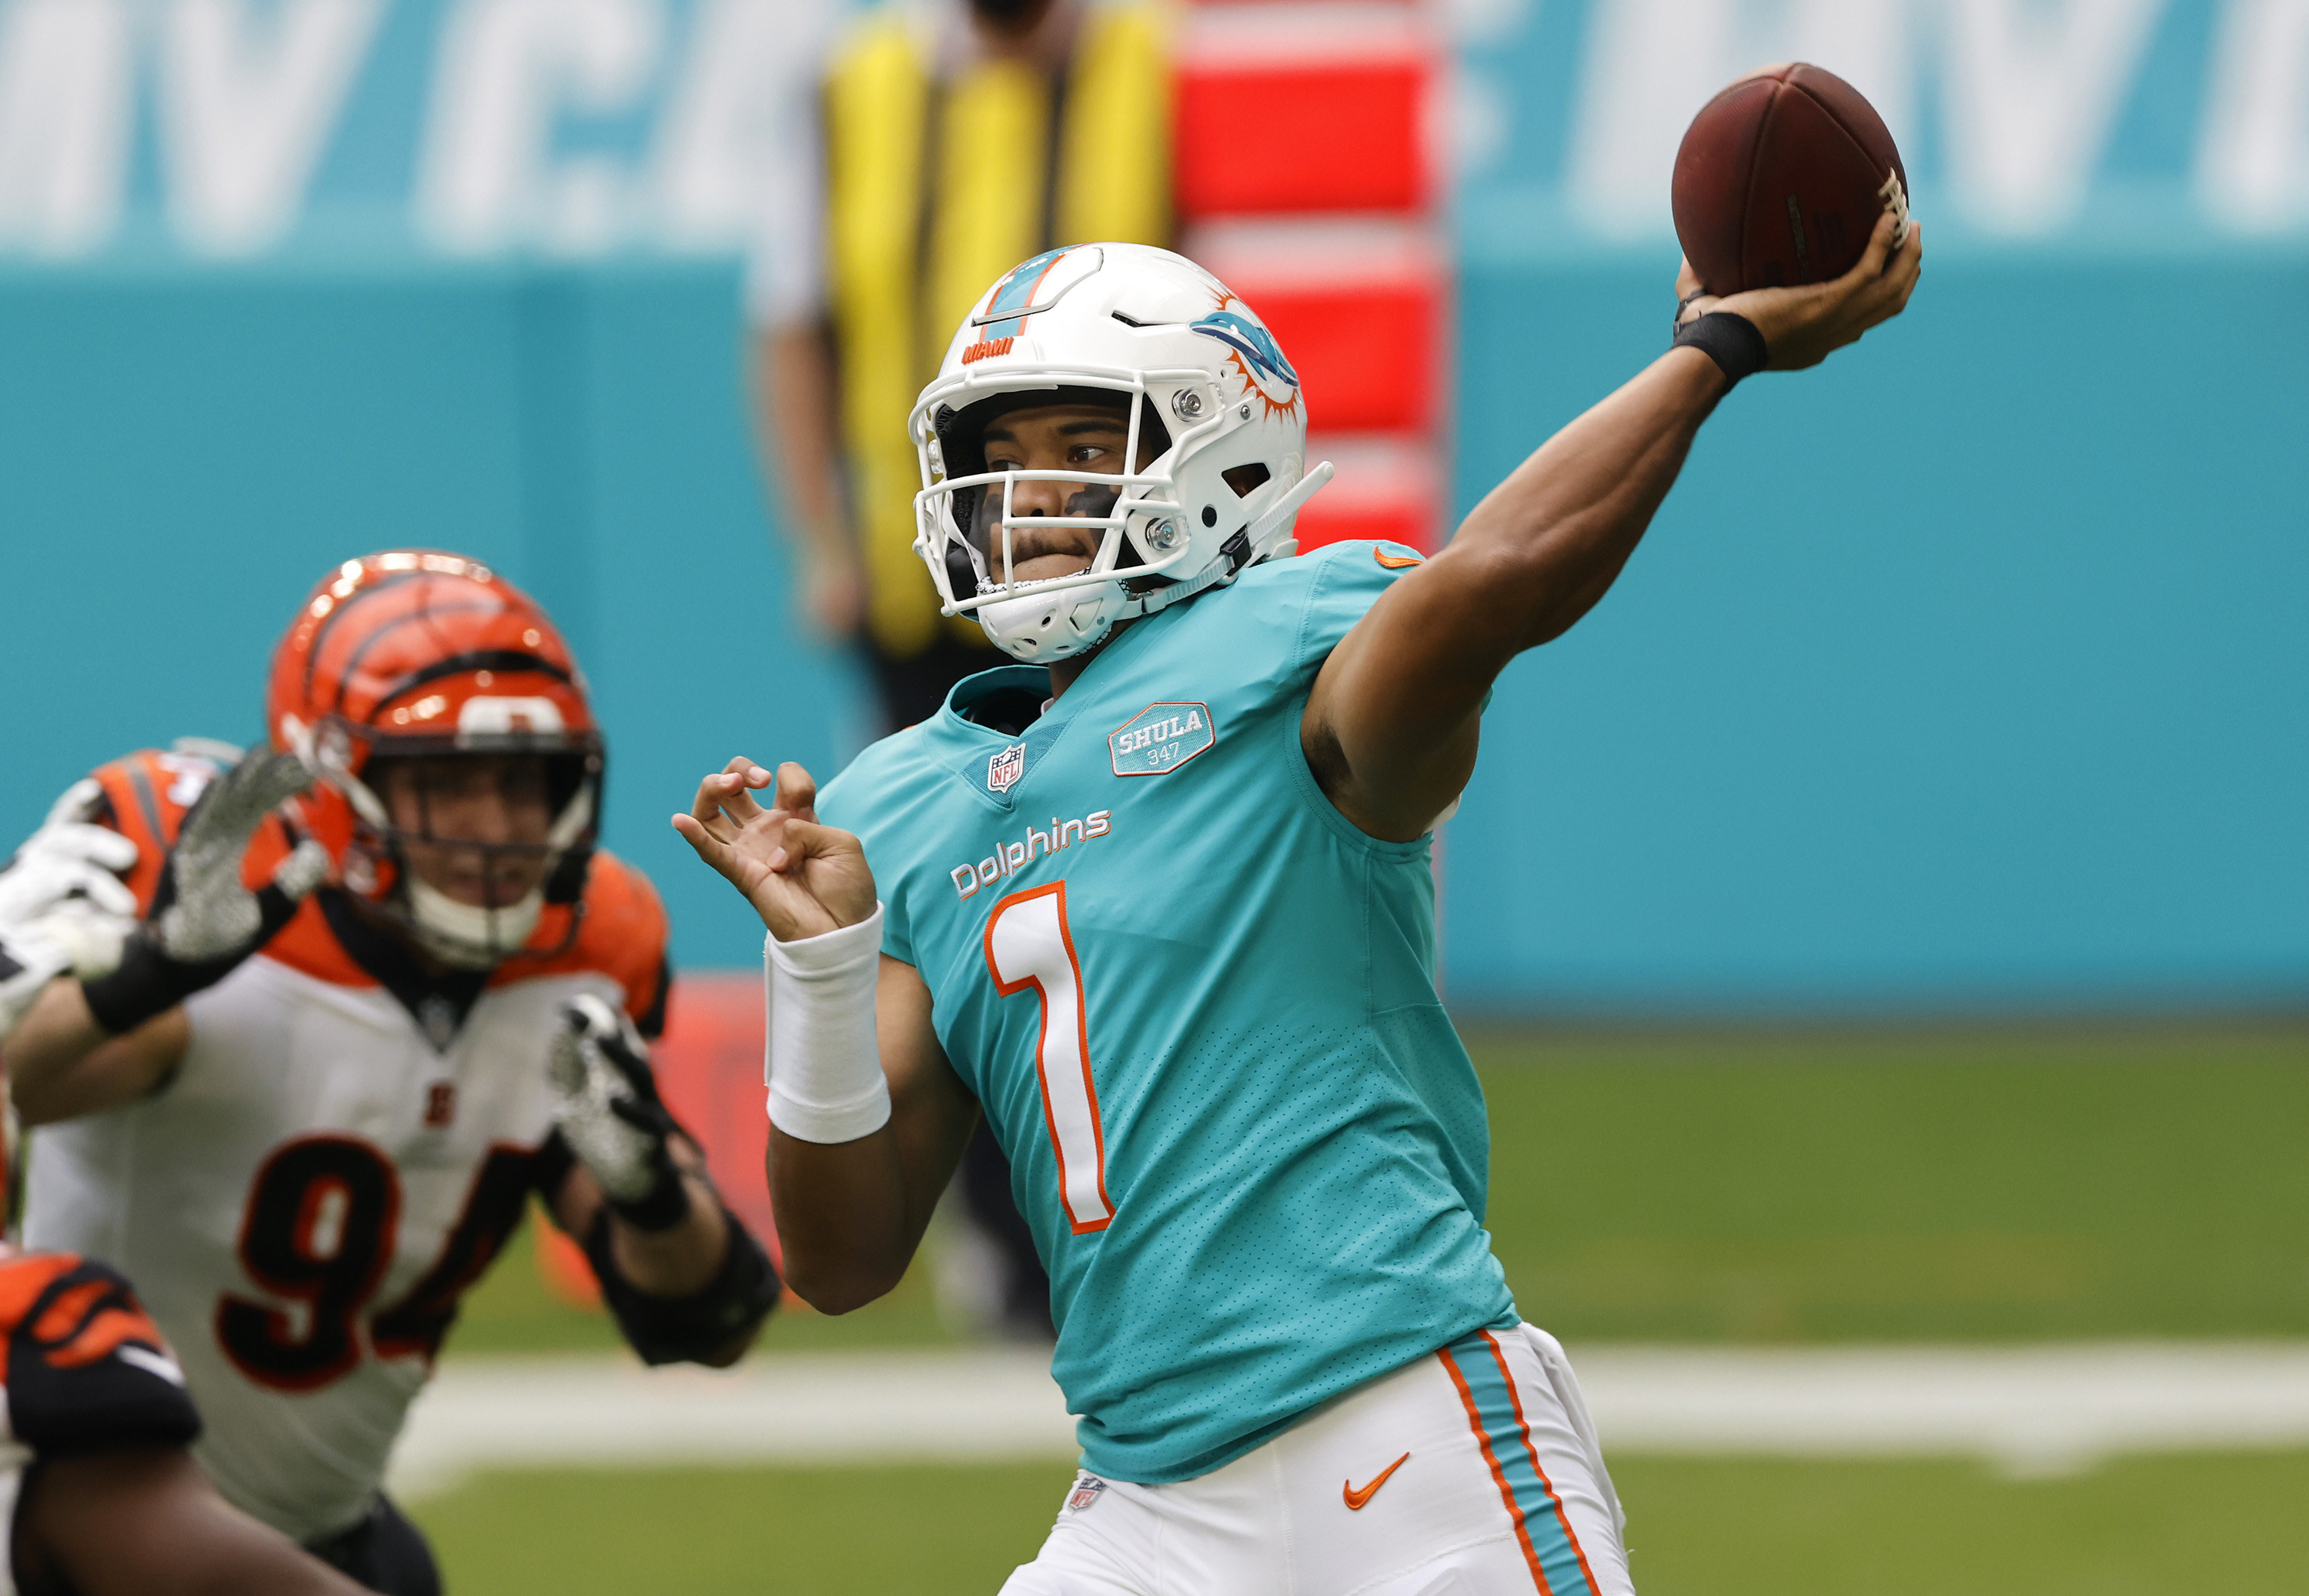 Dolphins white helmets and teal jersey